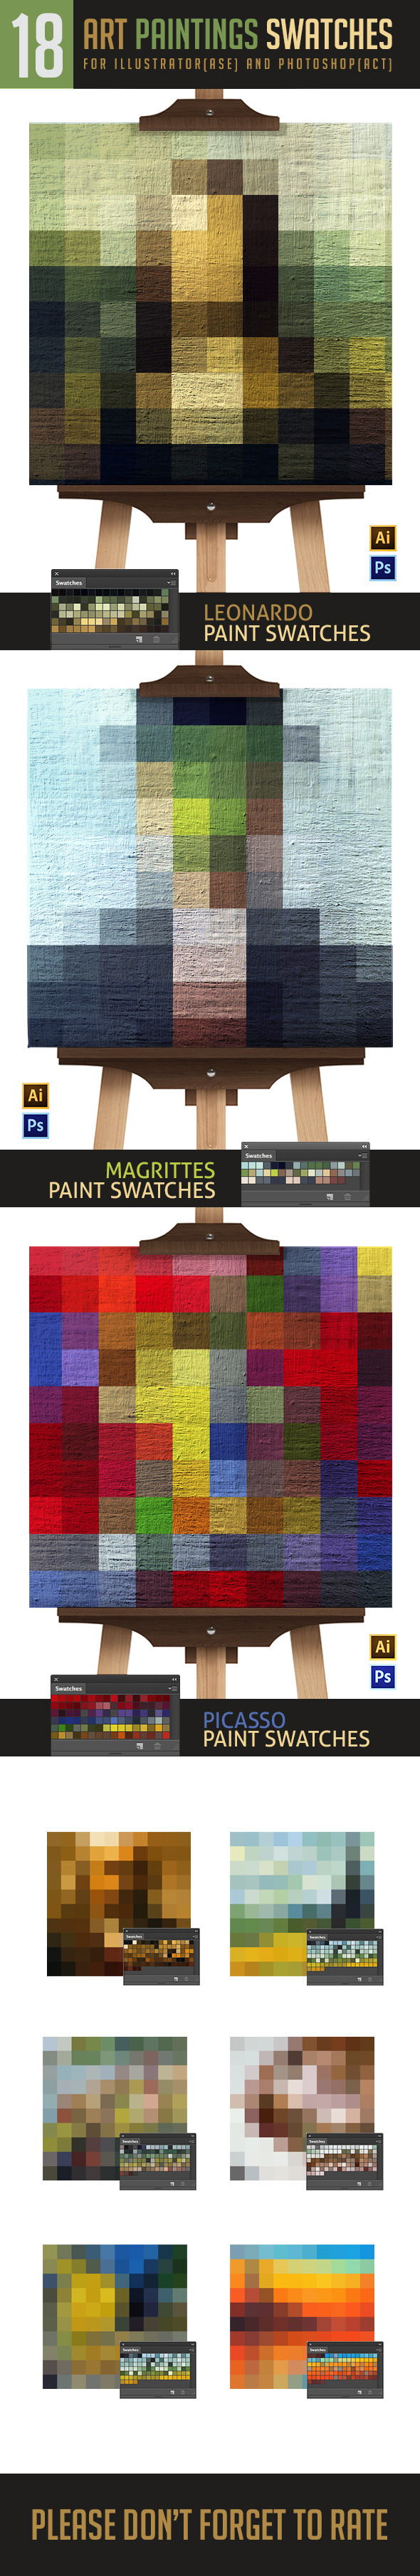 Famous Paintings Swatches For Photoshop and Illust